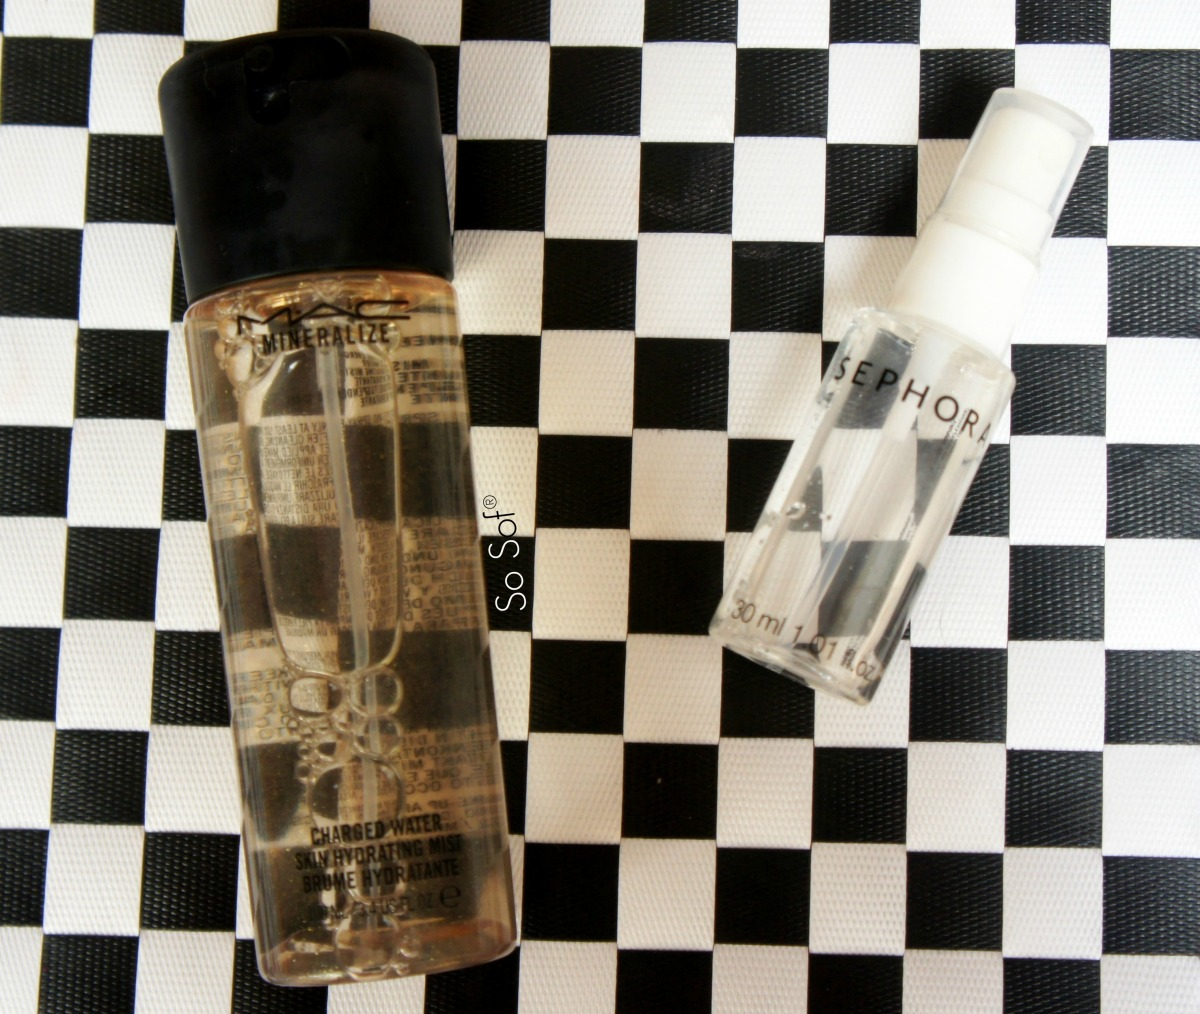 DIY Mac Fix plus / Setting Spray dupe